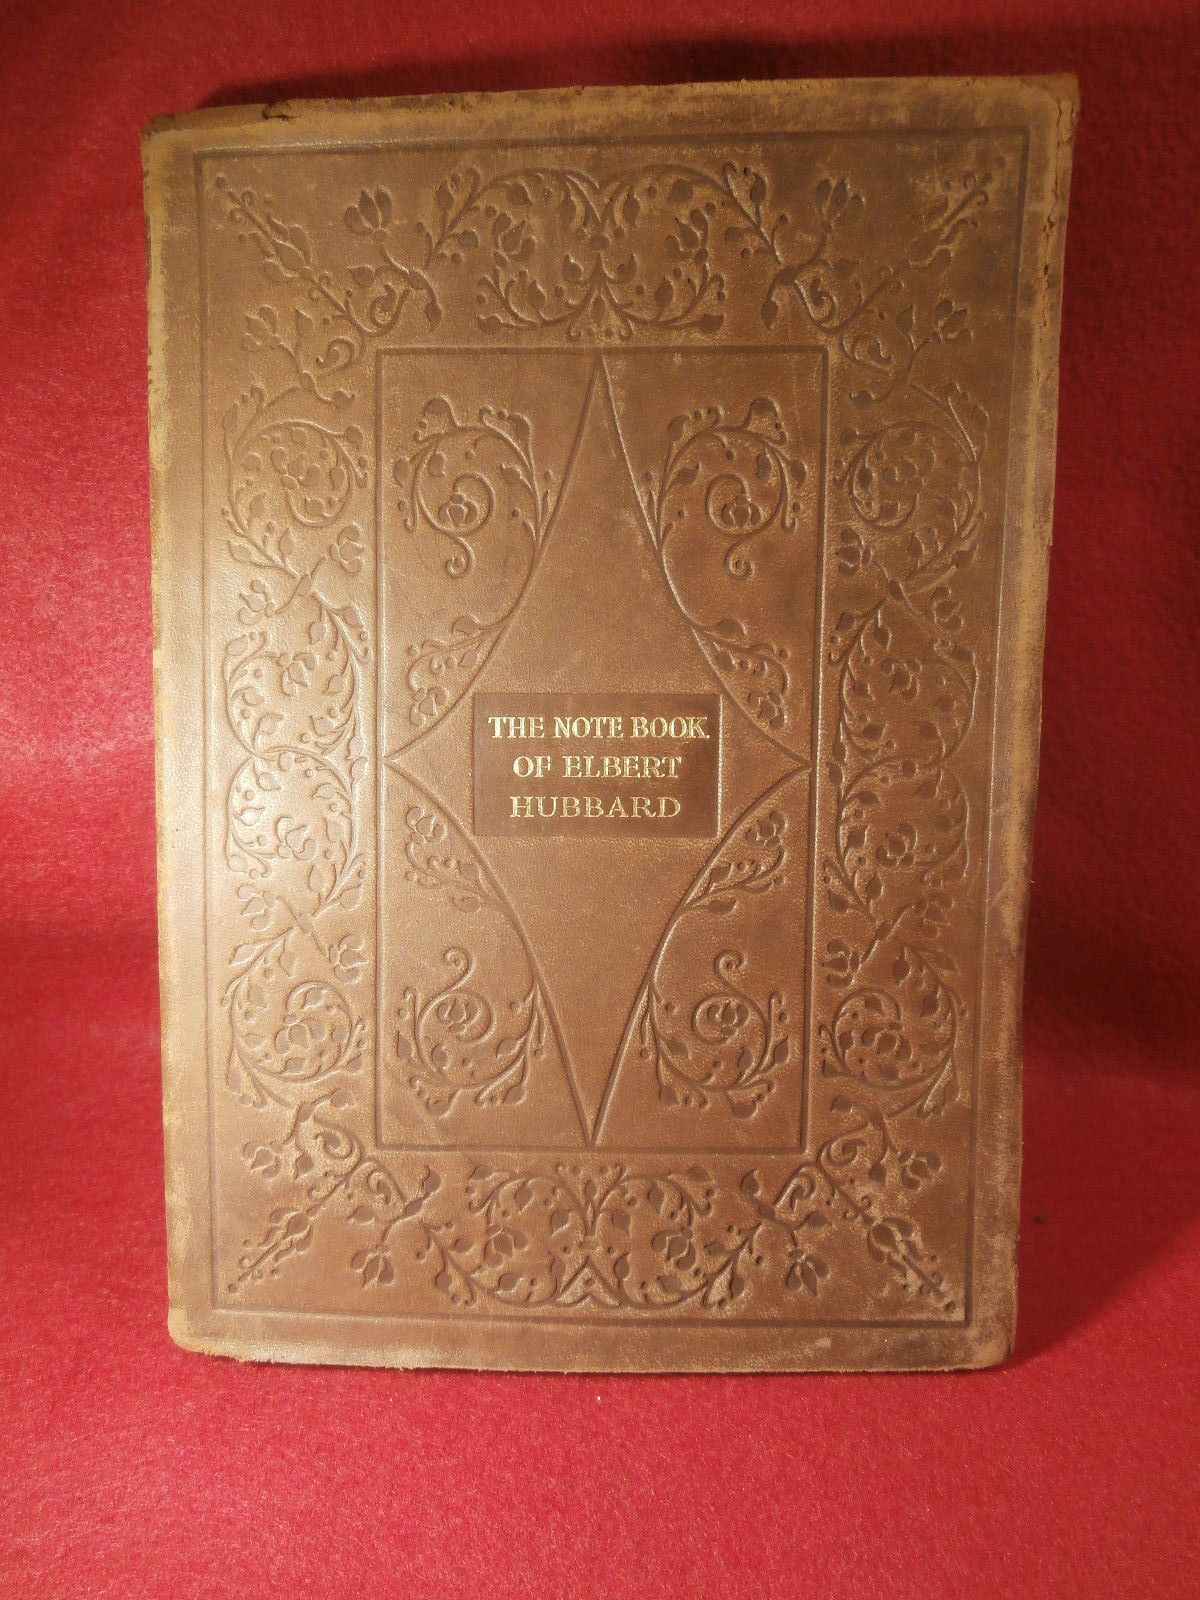 THE NOTE BOOK OF ELBERT HUBBARD PUBLISHED BY WILLIAM WISE & CO, NY 1st Ed